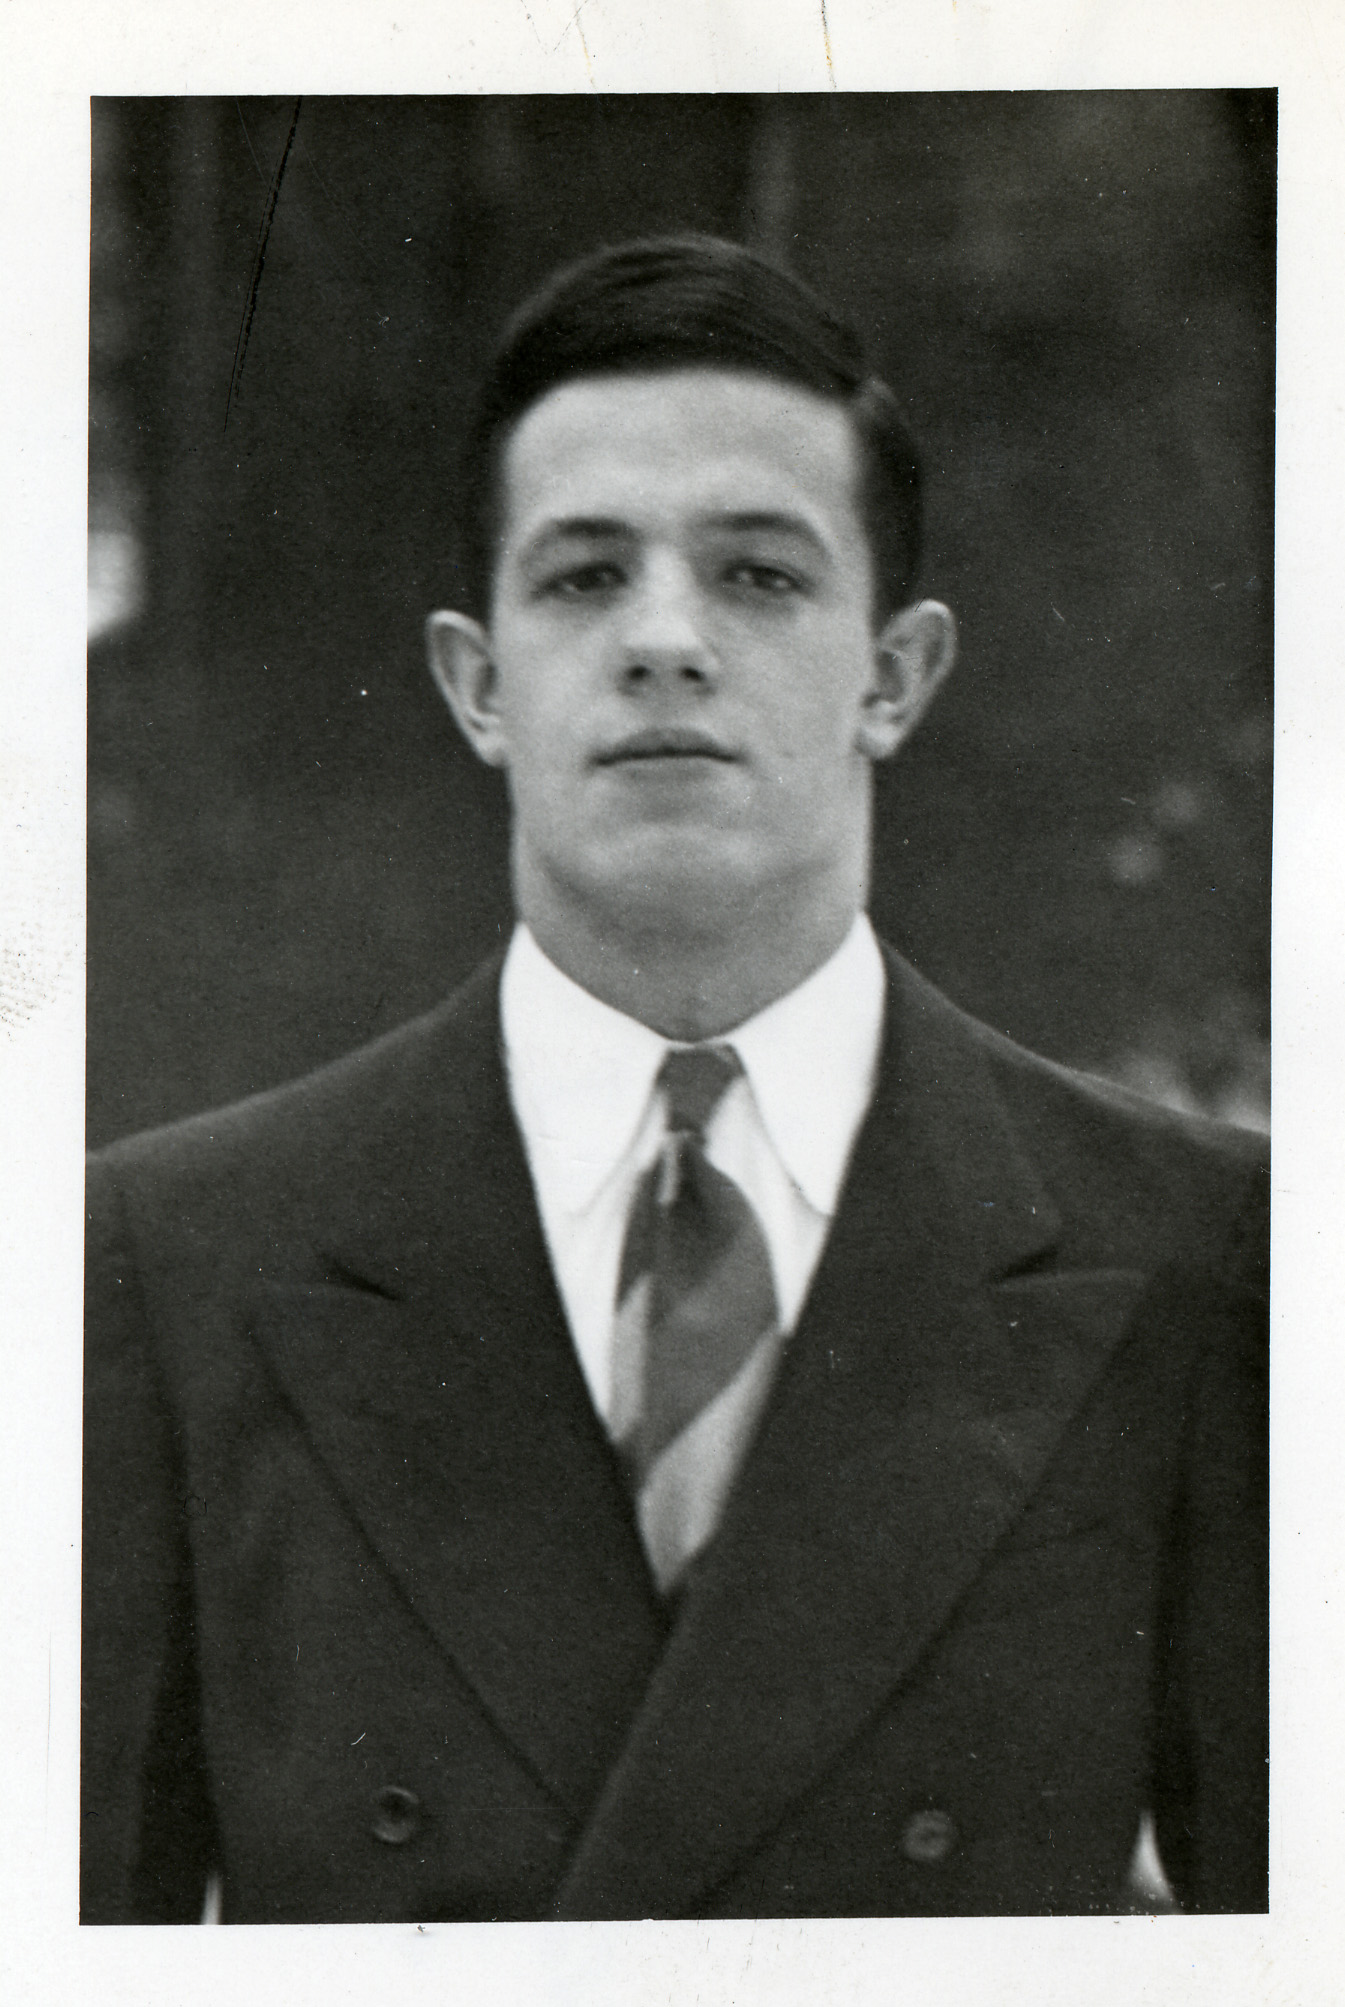 John Nash Undergraduate Photo, Princeton University Library